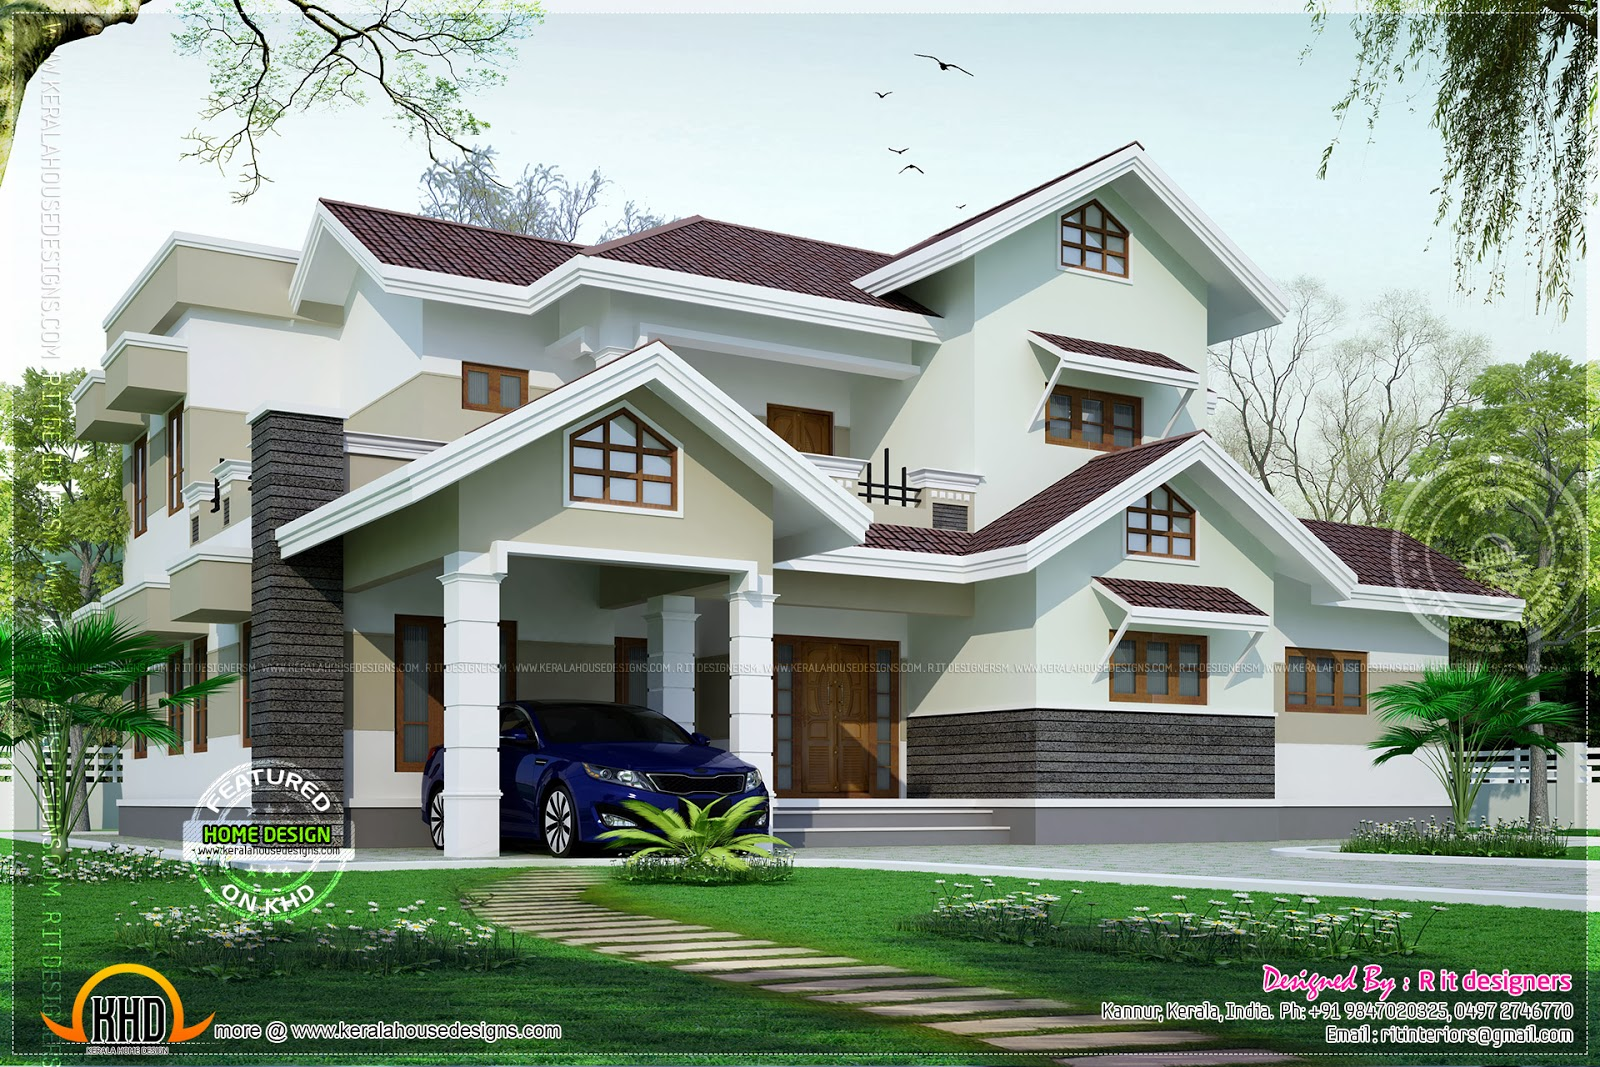 no of bedrooms 4 average finishing cost 635 lakhs may change time to time design style modern sloping roof house details - Nice Home Designs